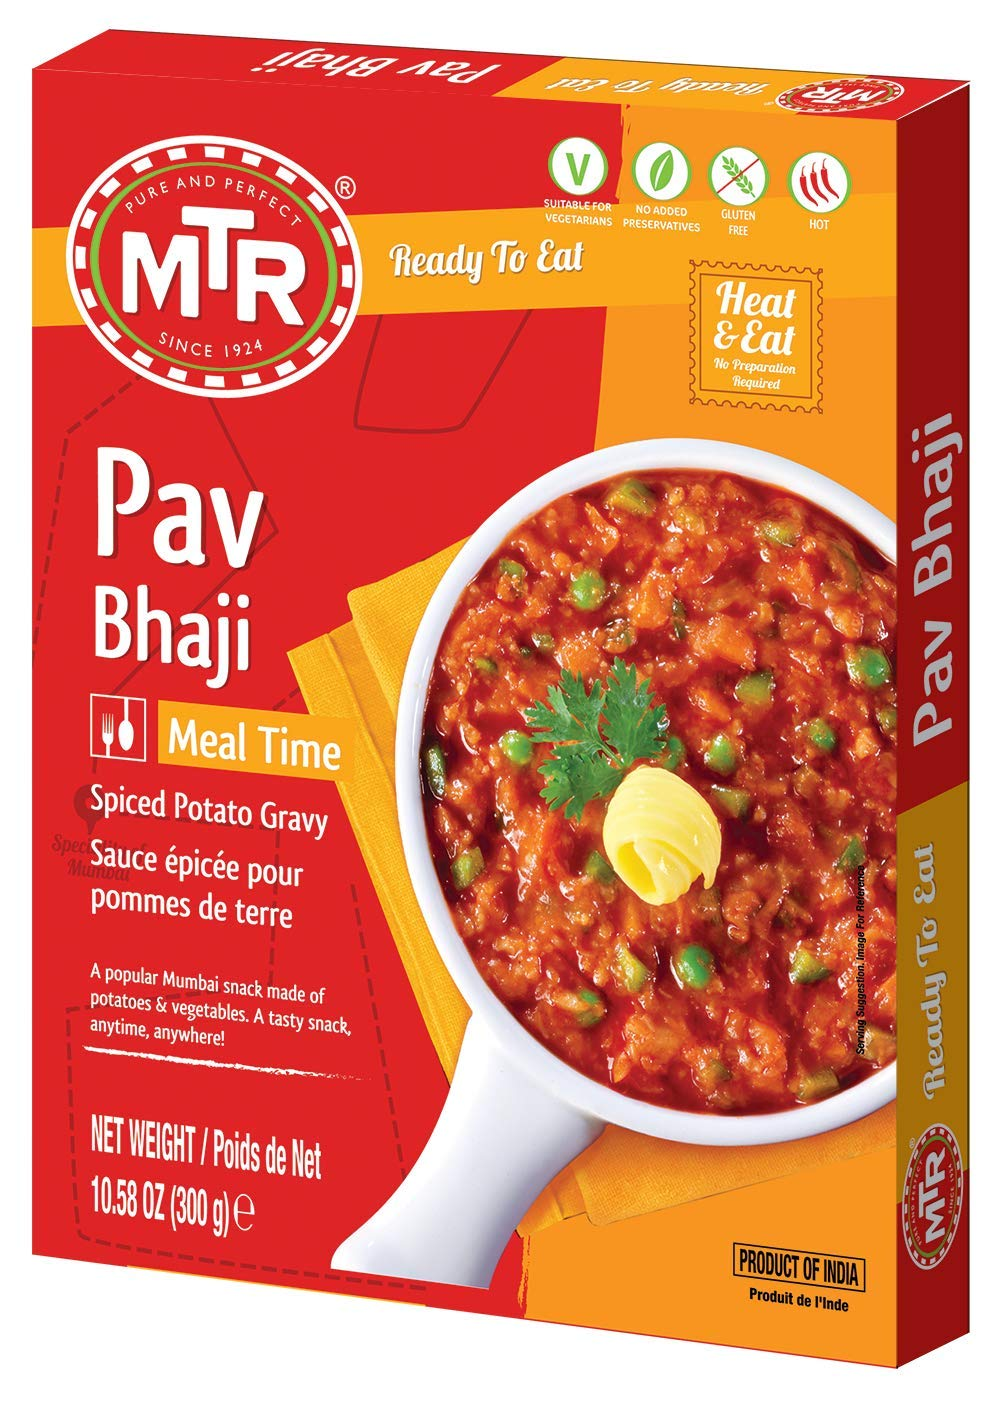 MTR Ready to Eat Pav Bhaji | Pack of 10 (10.58 Oz Each) | Spiced Potato Gravy | Authentic Indian Food | Hot Spicy | Just Heat and Eat | No Preparation | No additives | Gluten Free